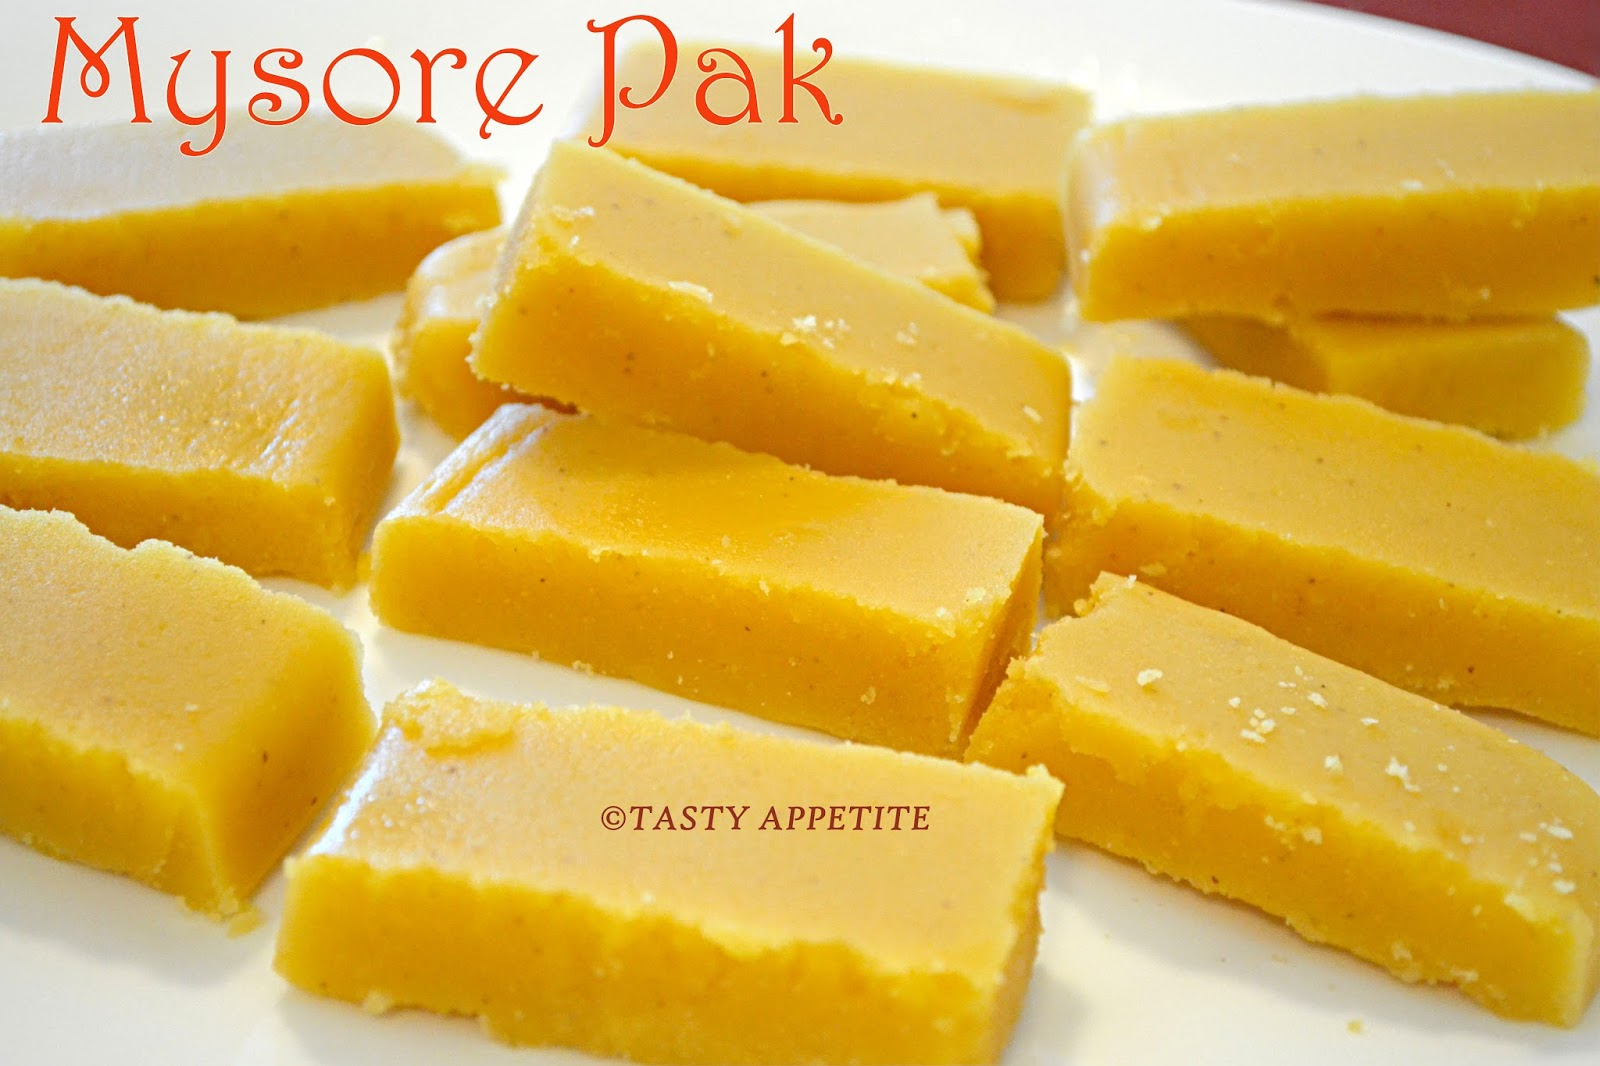 Mysore Pak: The 3-Ingredient Dessert that Melts in the Mouth ...